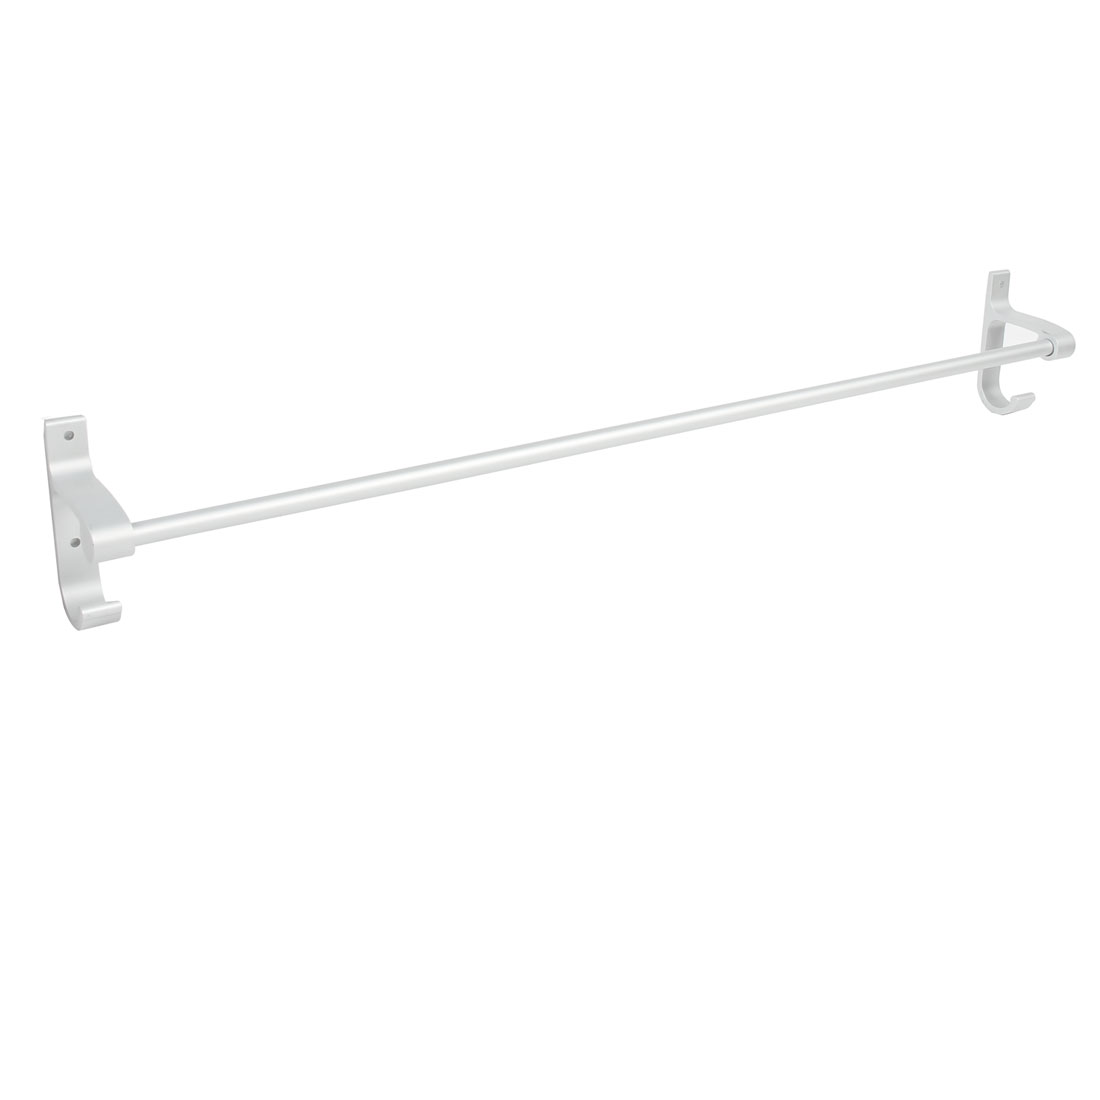 Hotel Home Bathroom Alumimum Wall Mount Single Bar Towel Rack Hanger 70cm Length